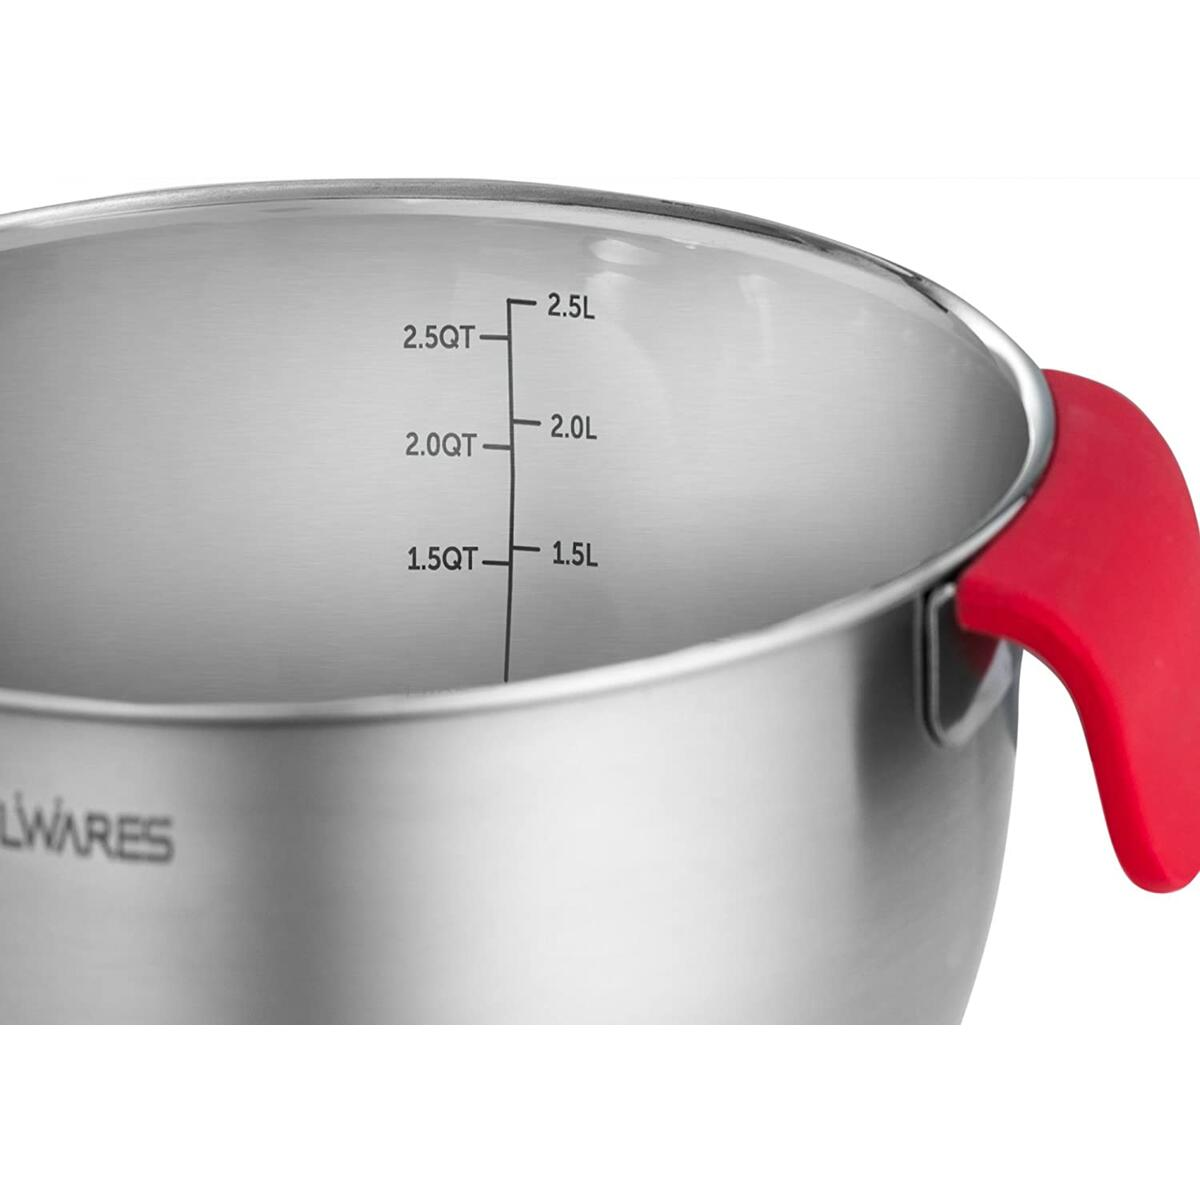 Belwares Stainless Steel Mixing Bowls - Set of 3 Nesting Bowls with Handle, Lids, Grater Attachments - Great for Cooking, Baking & Food Storage - Set Includes 1.5 Qt, 3 Qt. & 5 Qt